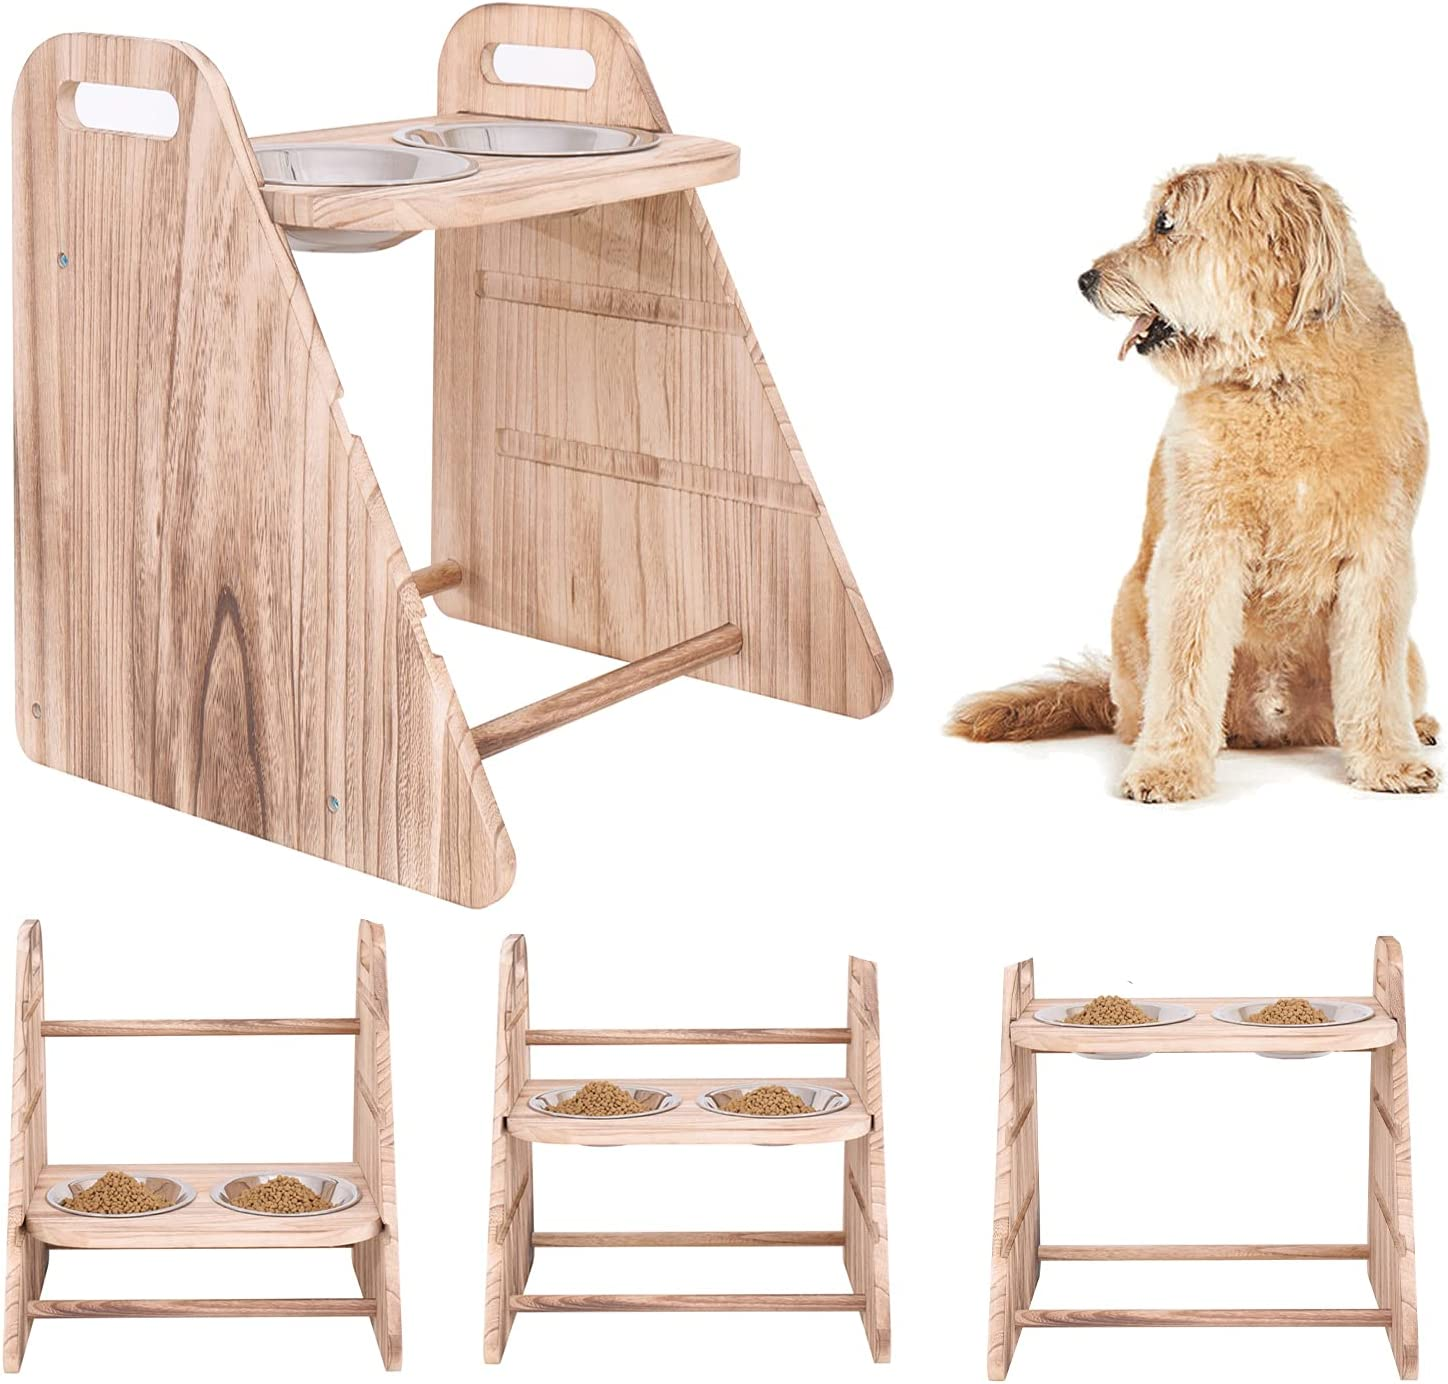 Elevated Dog Bowls Feeder, Large Raised Dog Bowls Stand with 2 Stainless Steel Bowls,Adjustable 3 Heights Dog Cat Stand Feeder,Rustic Wood Pet Food Water Dishes Bowls.